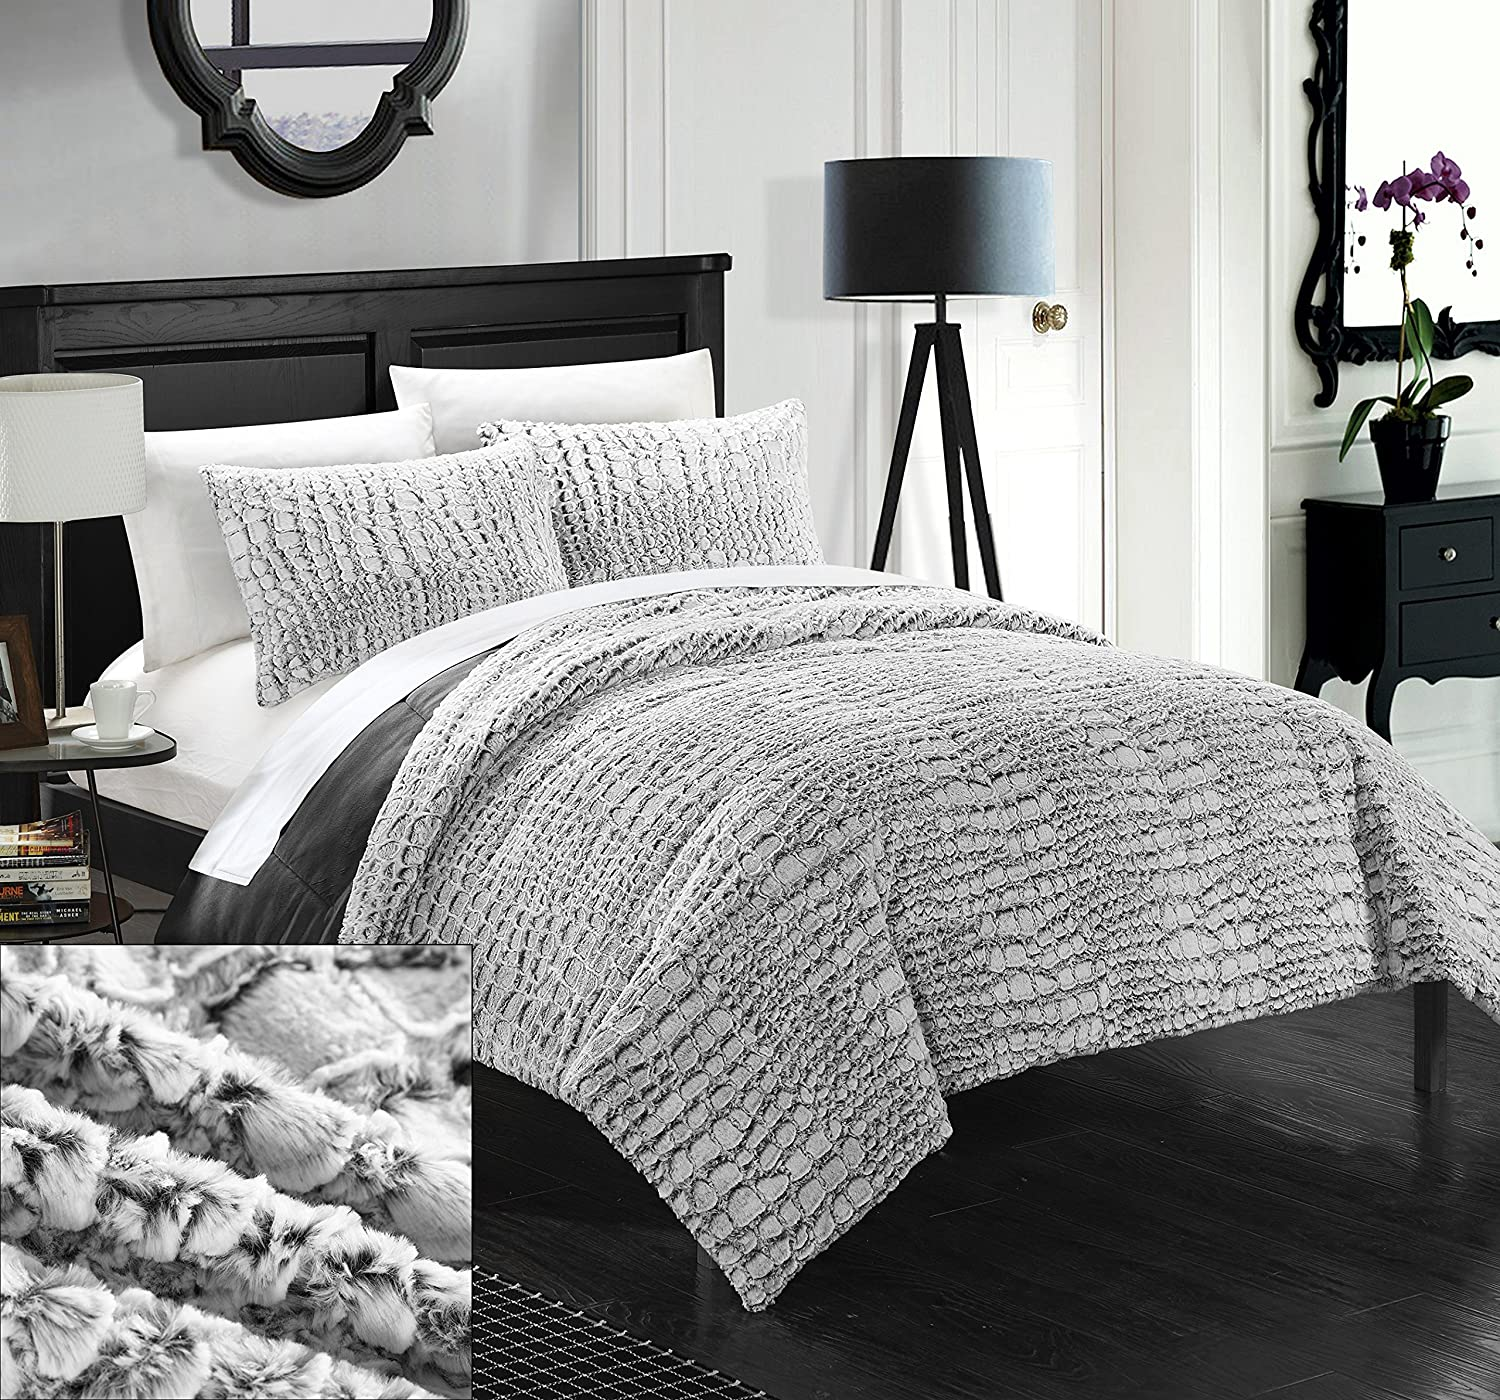 Chic Home 3 Piece New Faux Fur Collection with Mink Like Backing in Alligator Animal Skin Design Comforter Set, Queen, Grey